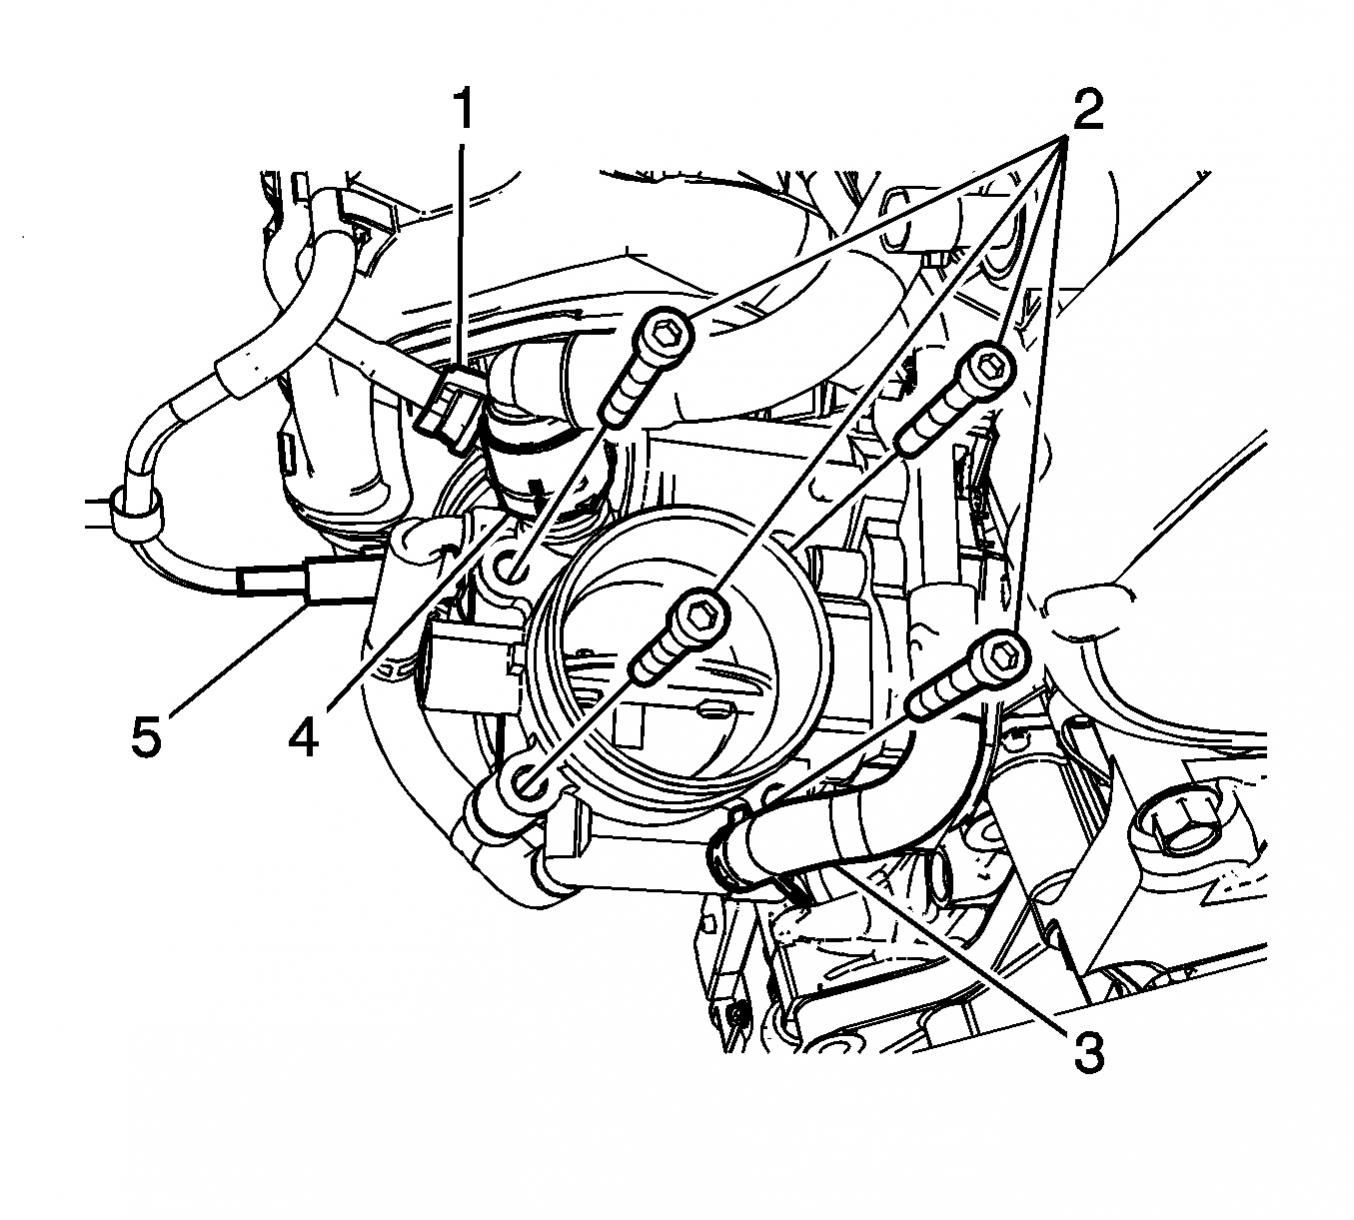 2004 cavalier engine diagram  wiring  wiring diagram images